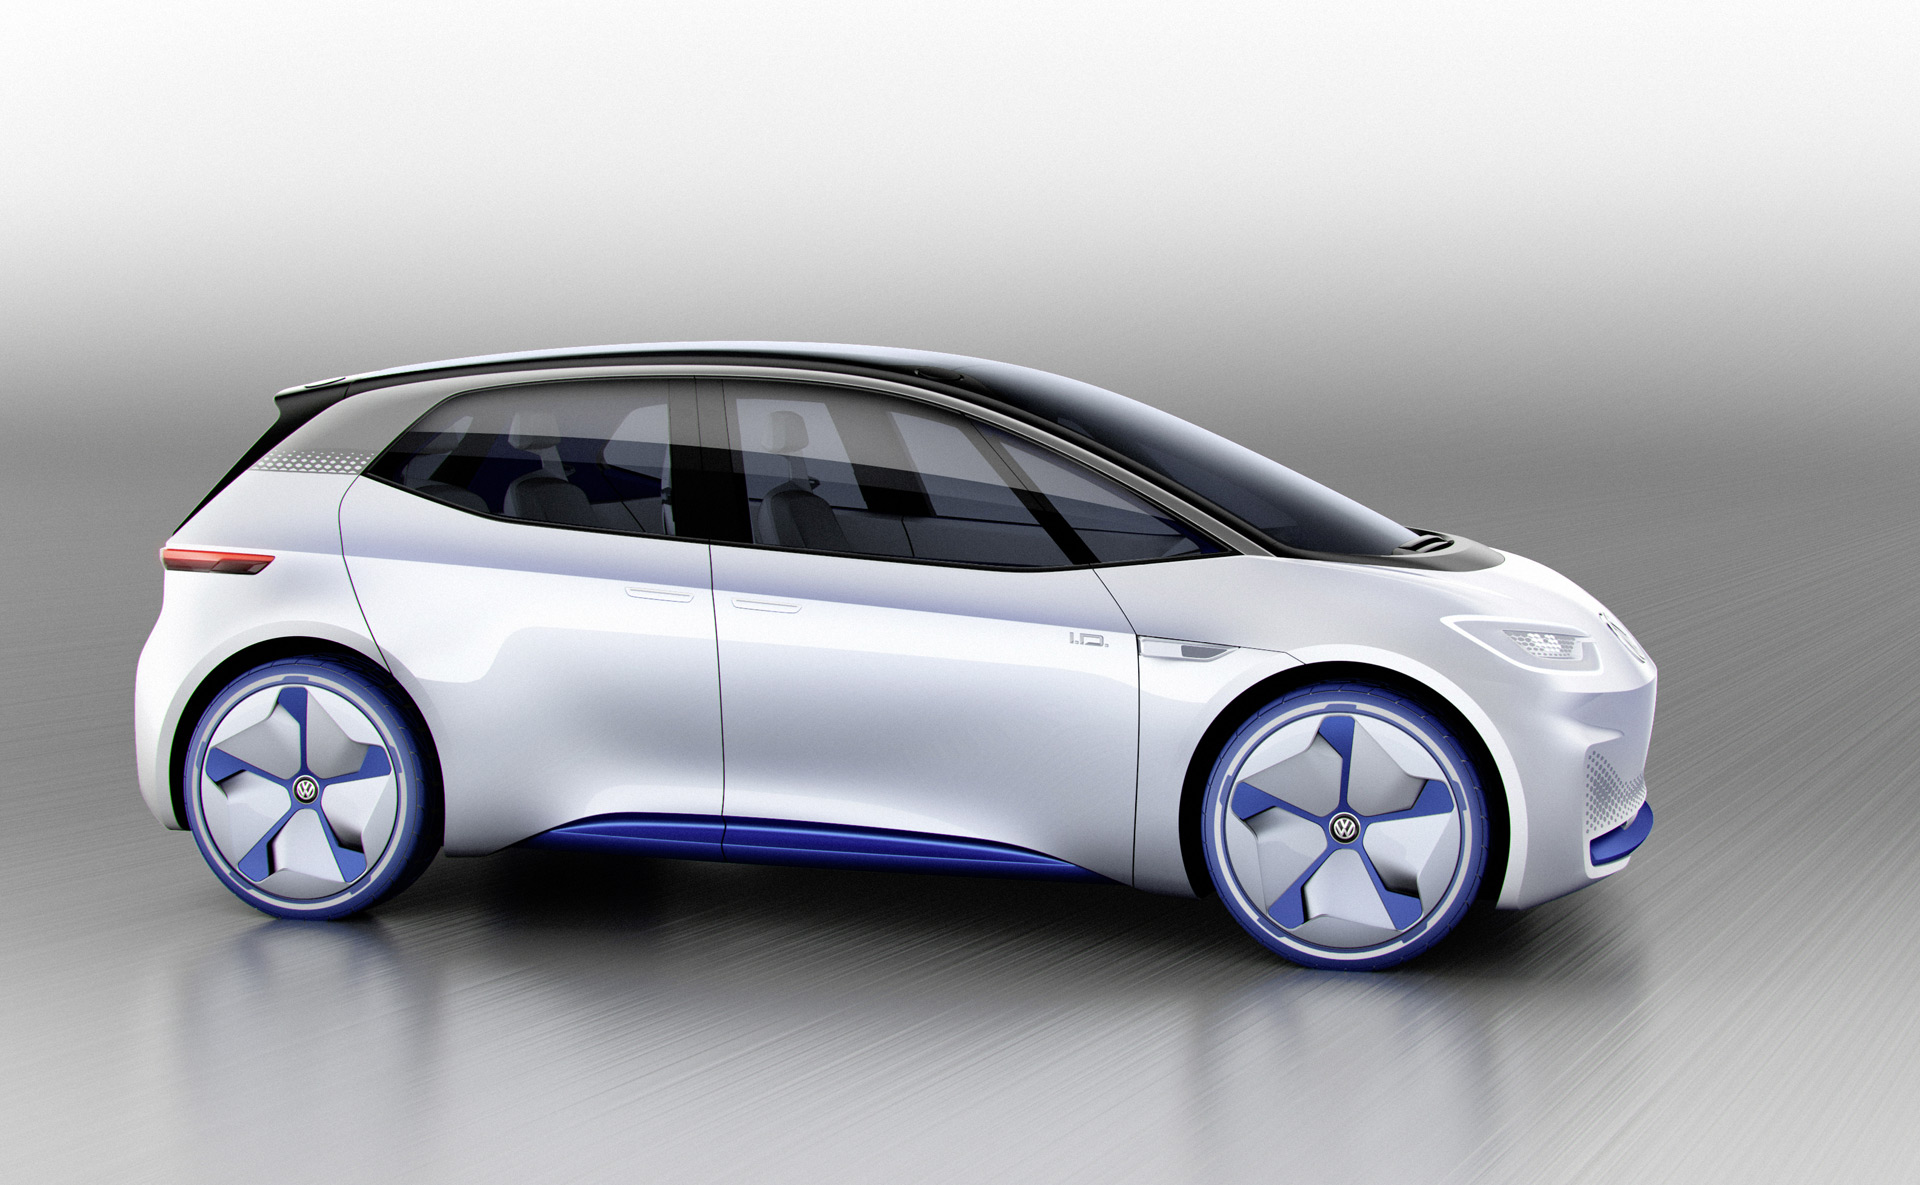 Vw Shows Renderings Of Id Electric Car Concept For Paris Motor Show